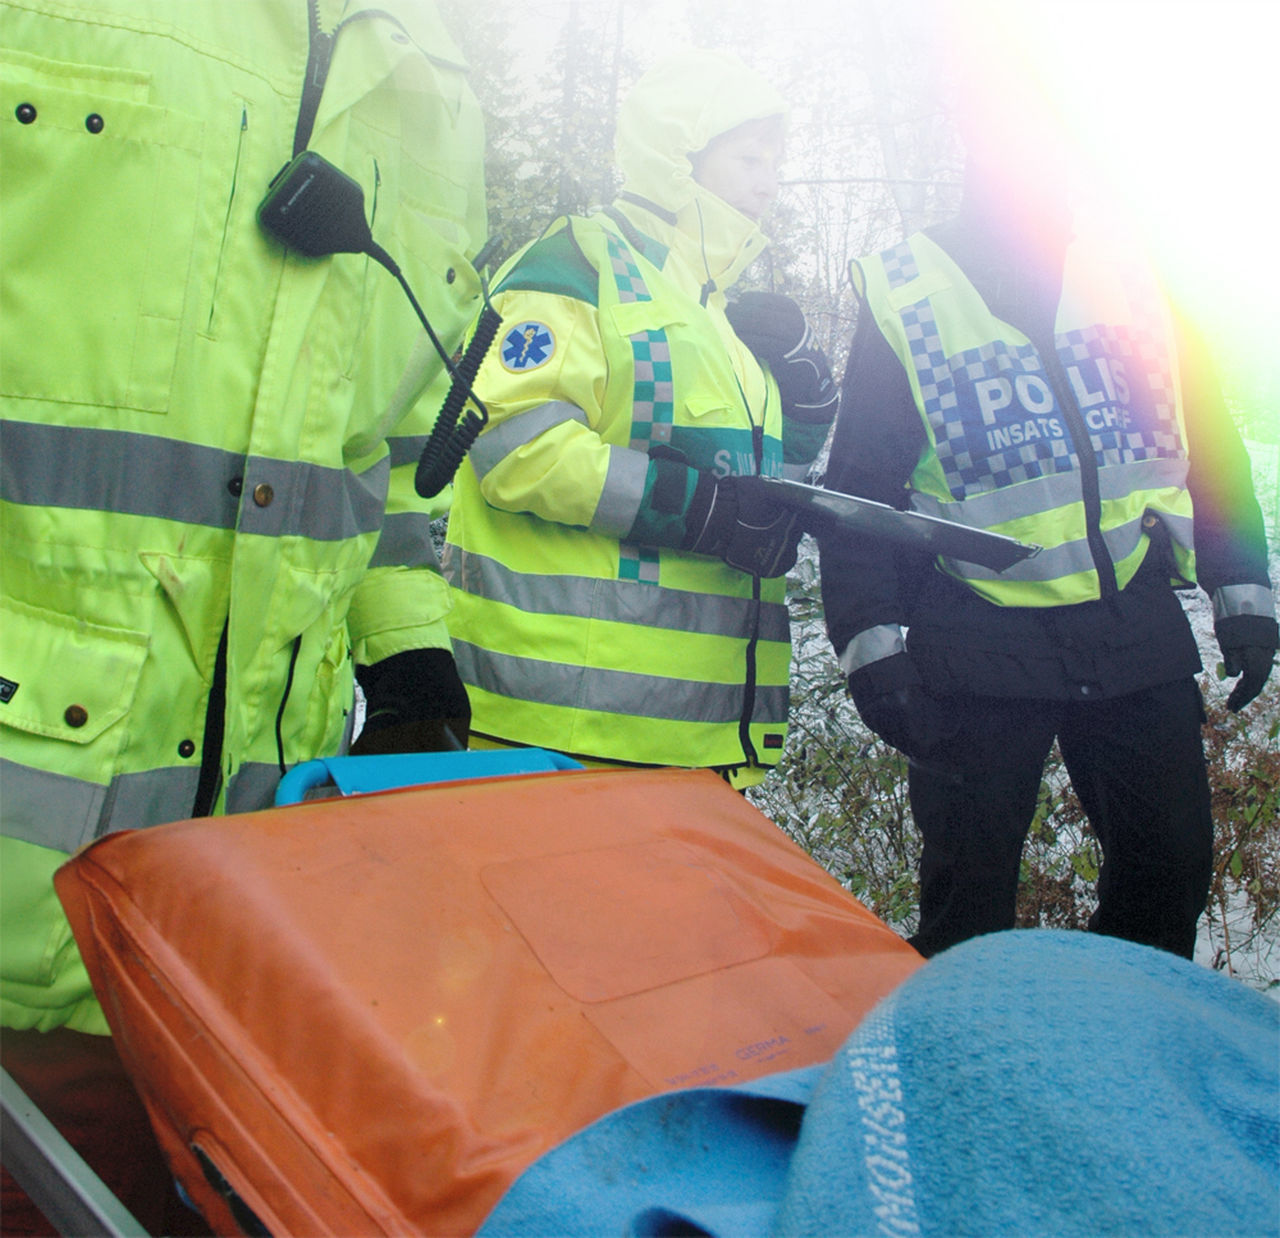 Ambulance Service Ambulance Staff Emergency Emergency Services Police Policeman Protective Workwear Reflective Clothing Rescue Rescue Worker Rescued Stretcher Sweden